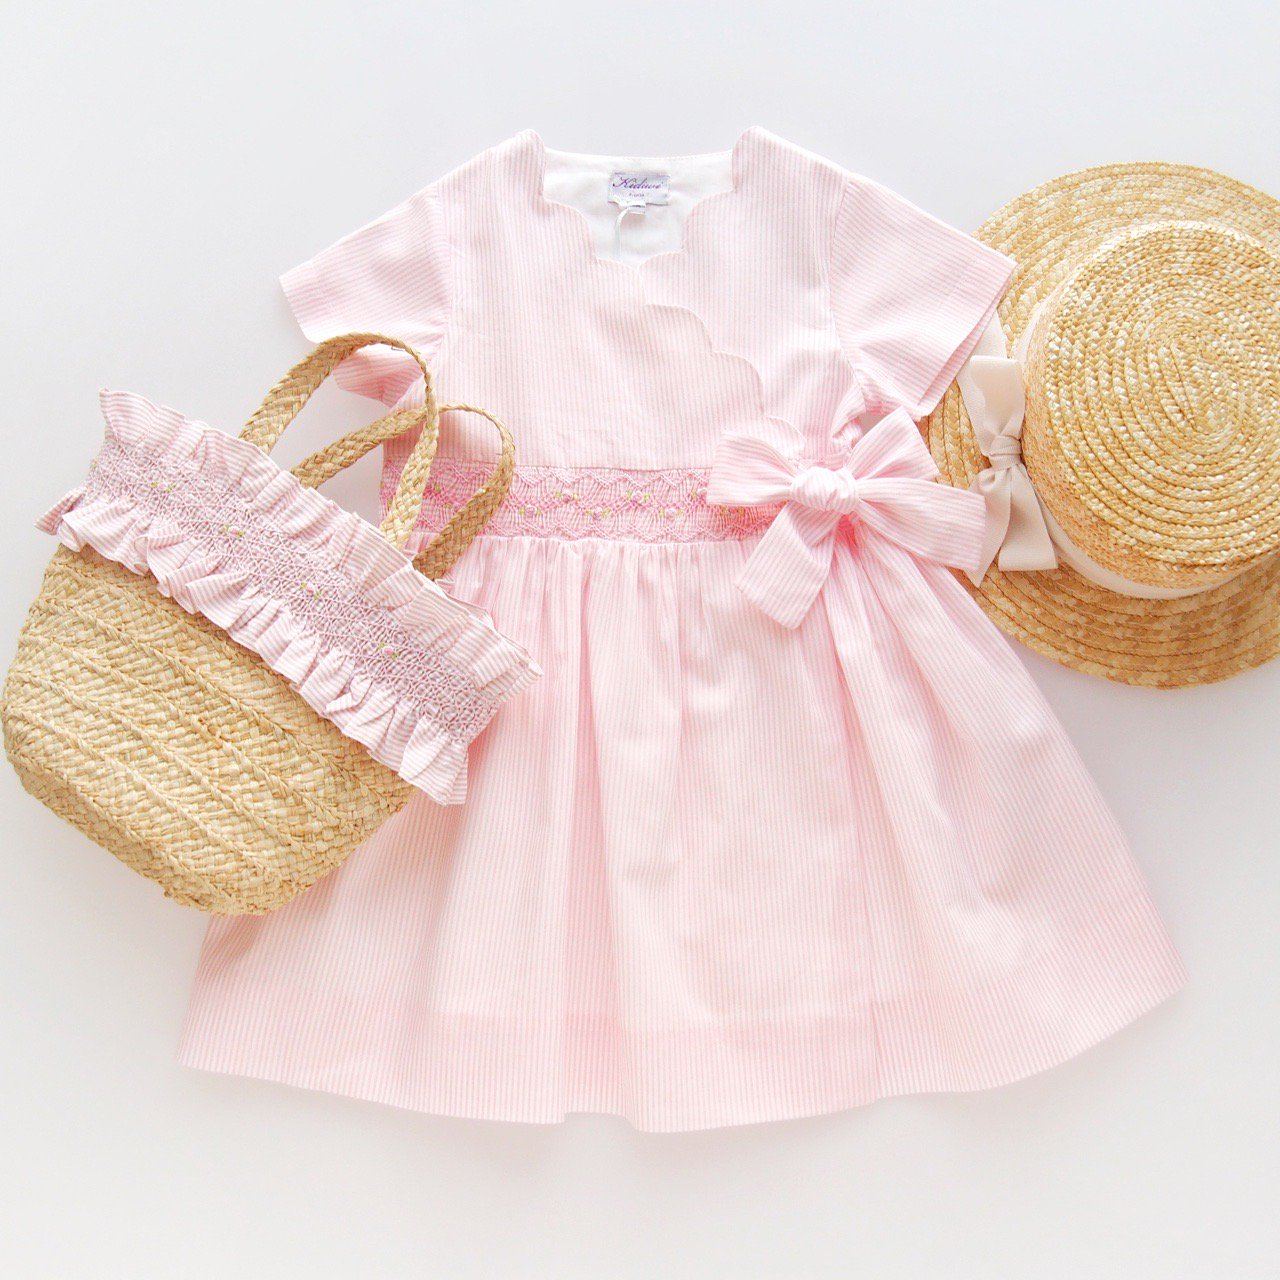 <img class='new_mark_img1' src='https://img.shop-pro.jp/img/new/icons14.gif' style='border:none;display:inline;margin:0px;padding:0px;width:auto;' />Kidiwi - SALLY dress (Pink pinstripes)